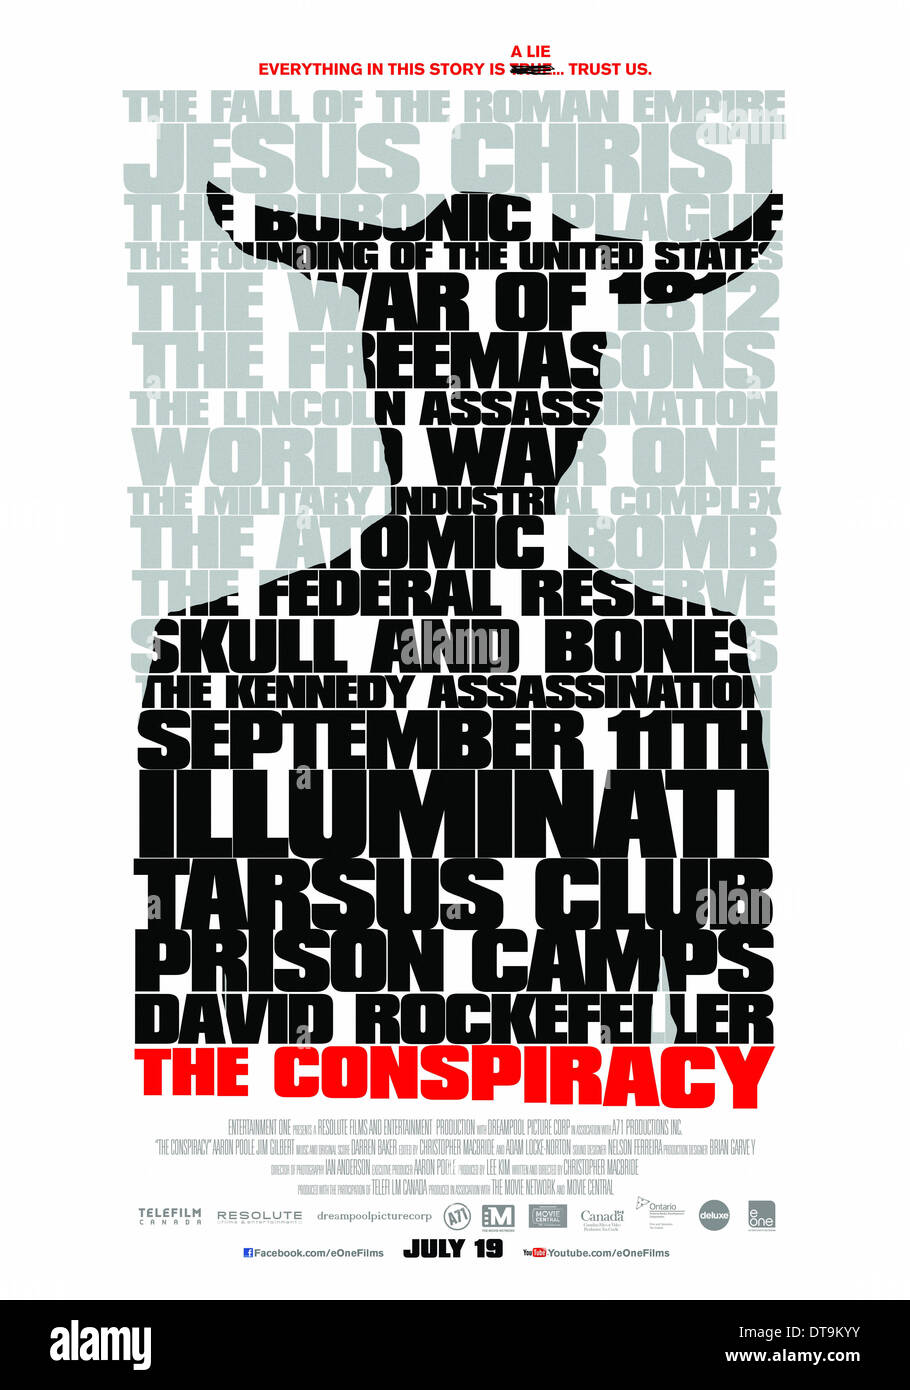 MOVIE POSTER THE CONSPIRACY (2012) - Stock Image